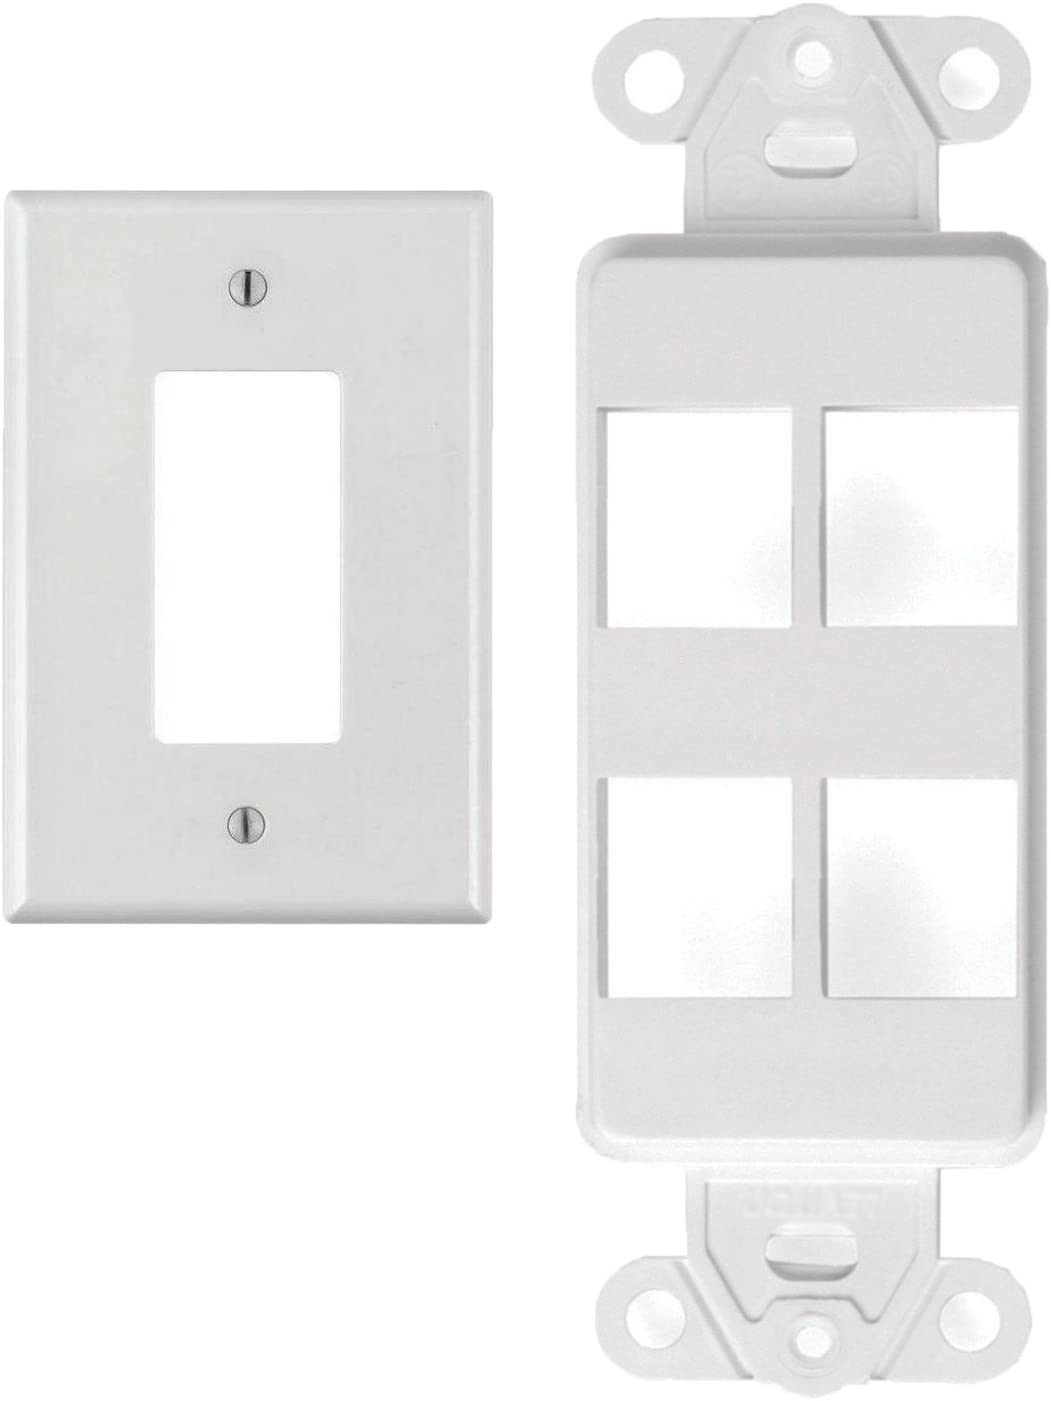 White 2 Port Decora Keystone Snap-in Jack Modular Wall Insert Cover Plate 5//pk